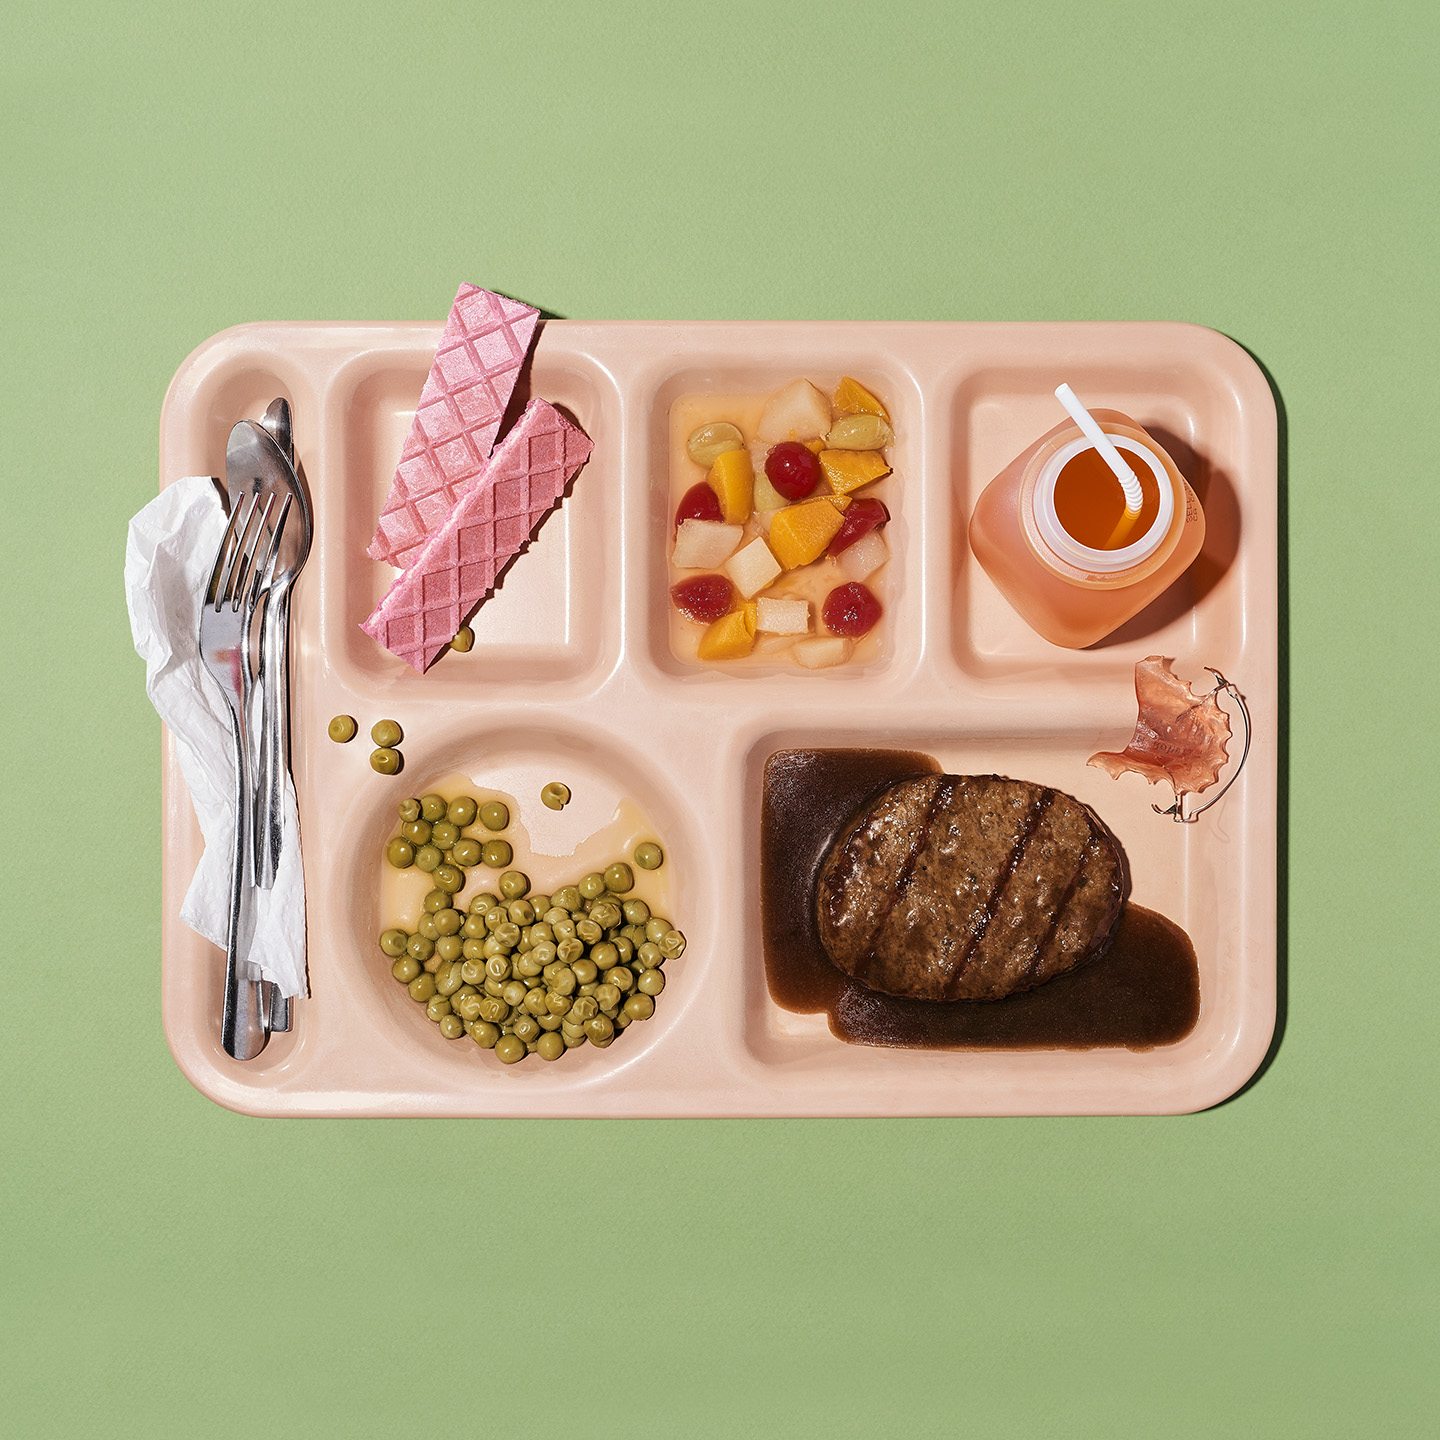 SchoolLunchMysteryMeat Vice school lunch last supper styled by Jessica Stewart Prop Stylist Specializing in food styling Imagery and set design, and conceptual art